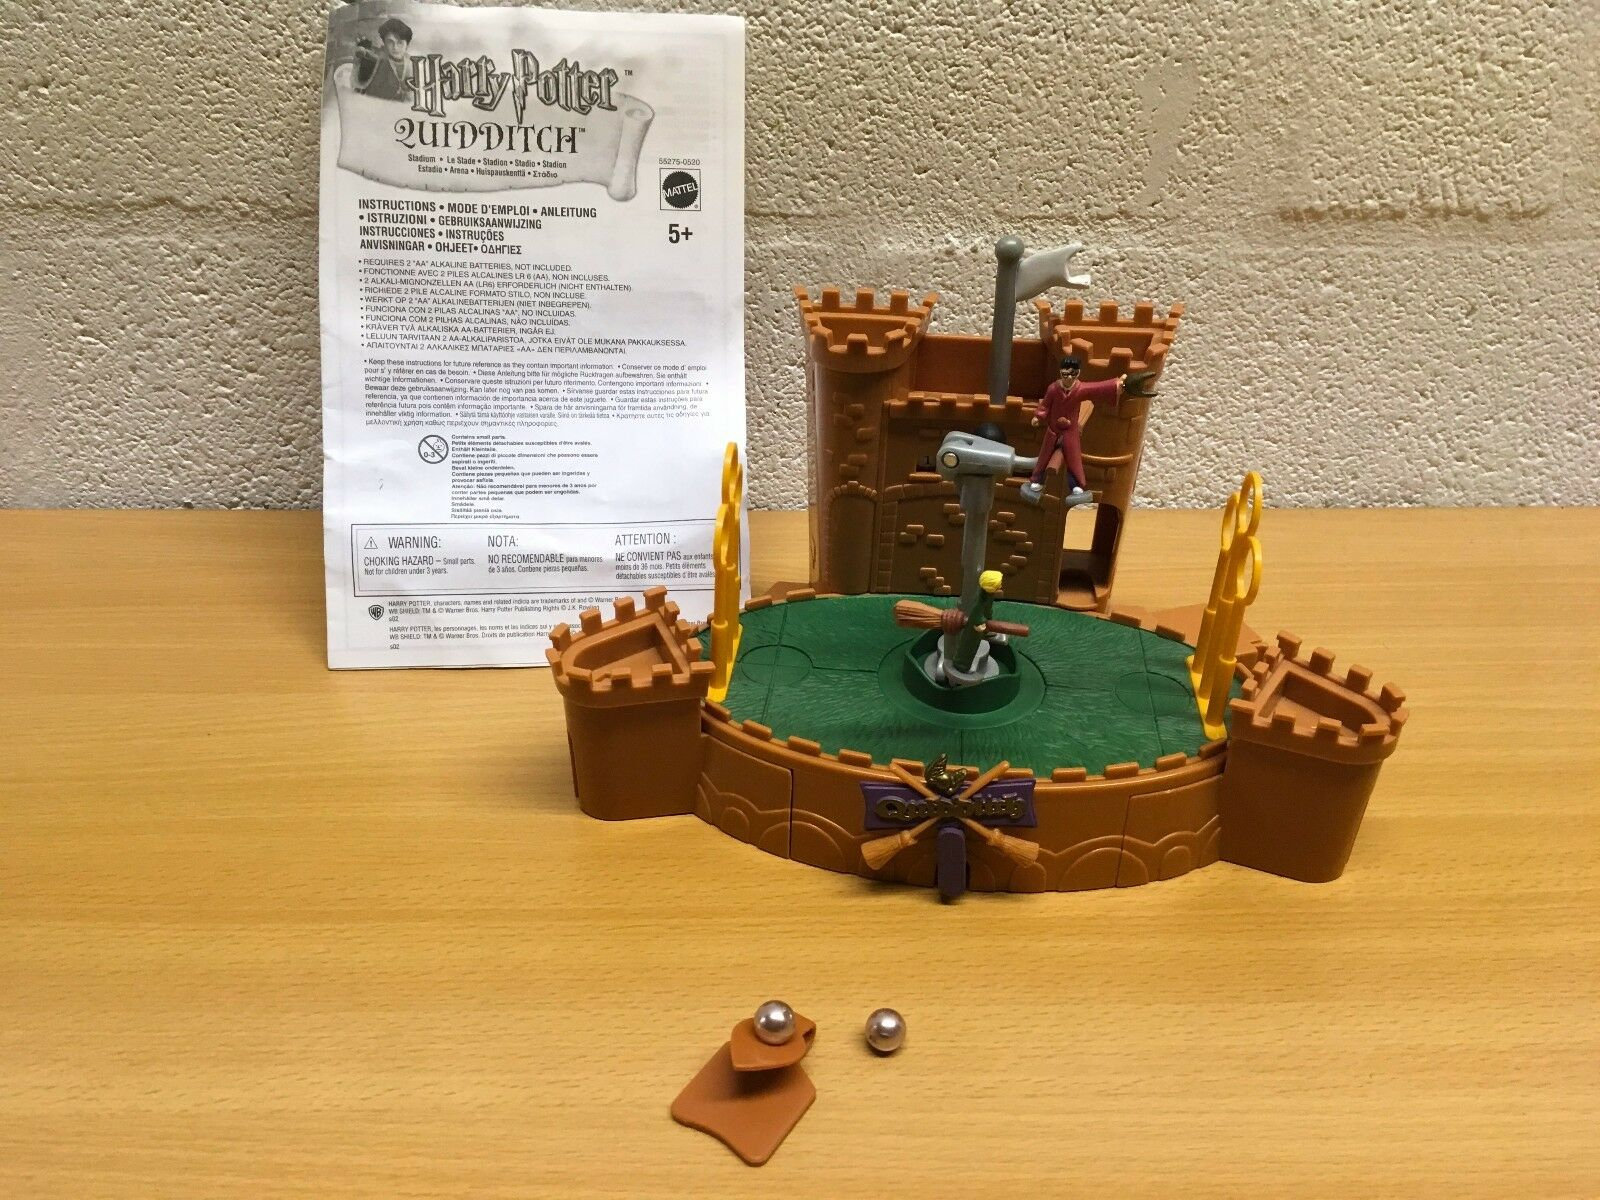 HARRY POTTER MATTEL PLAYSET BUNDLE FIGURES QUIDDITCH QUIDDITCH QUIDDITCH WHOMPING WILLOW YOU CHOOSE 6ec244